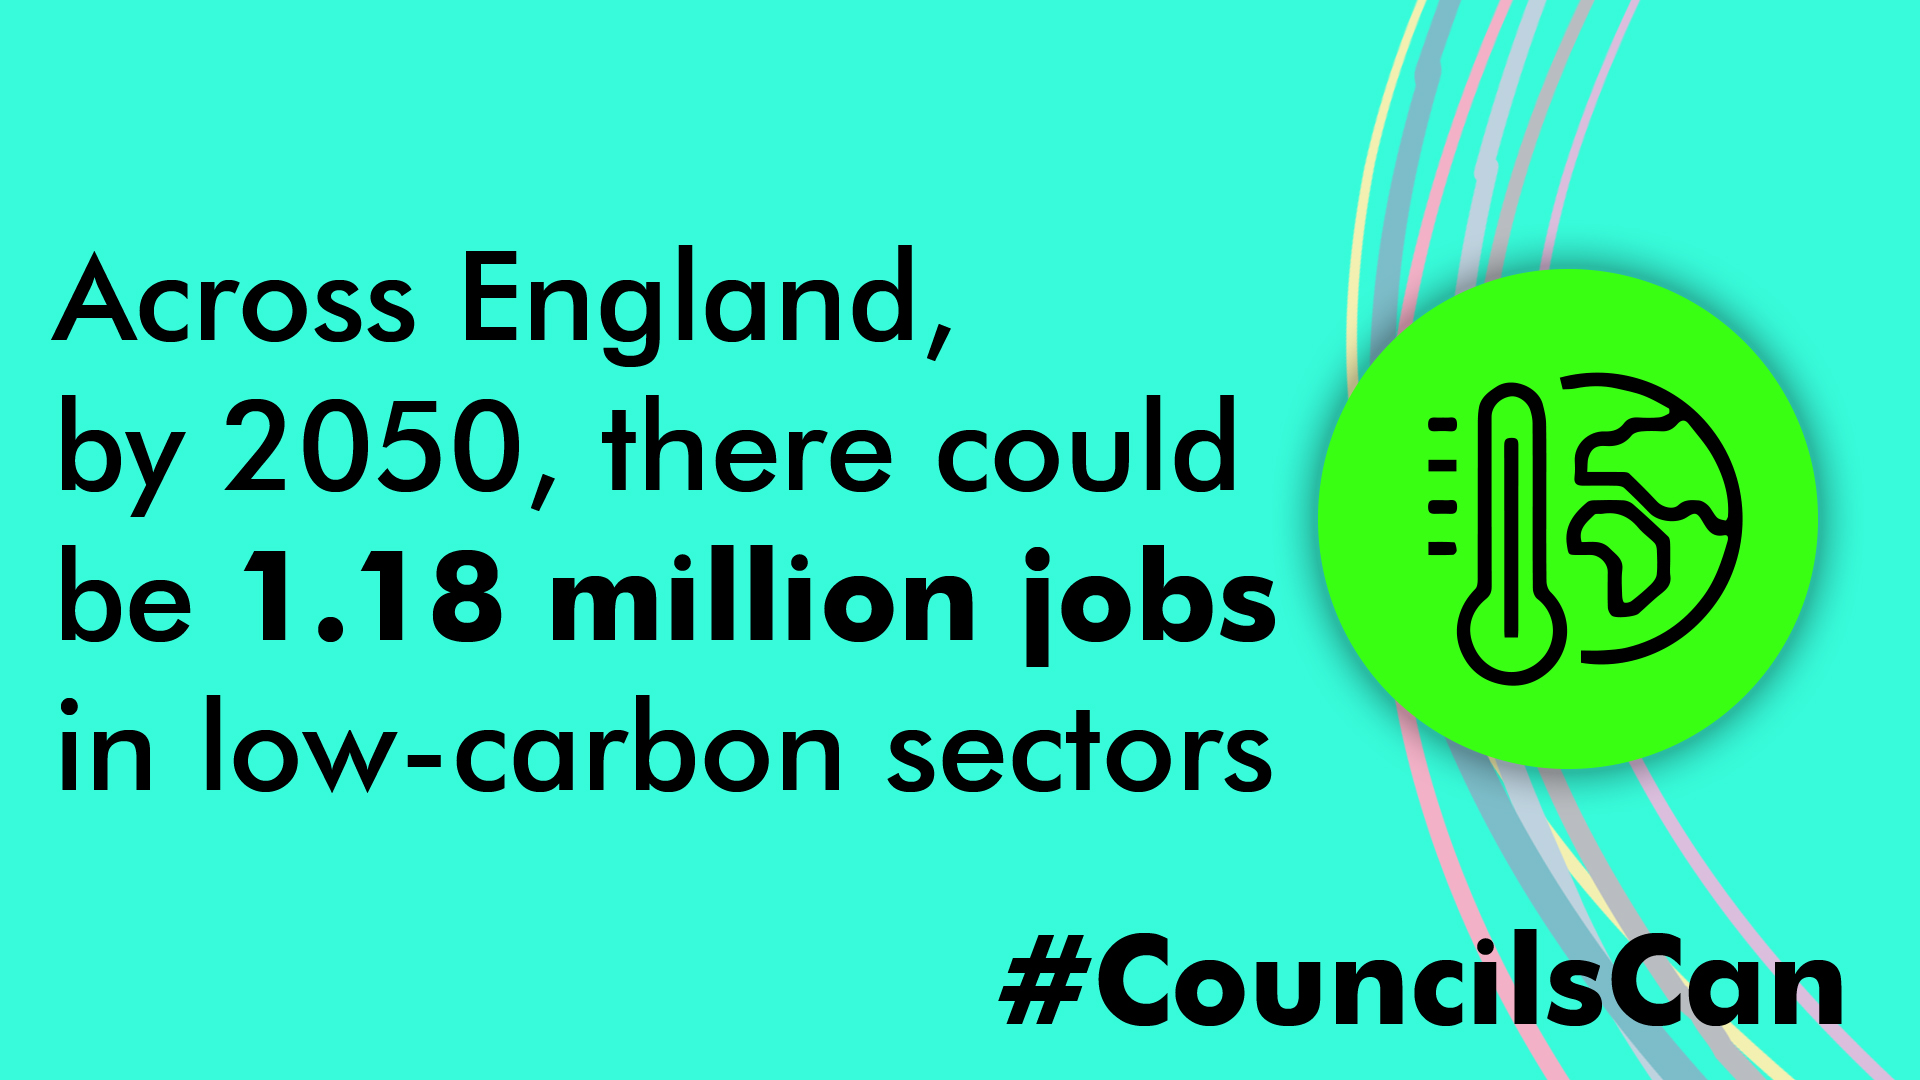 Across England, by 2050, there could be 1.18 million jobs in low-carbon sectors